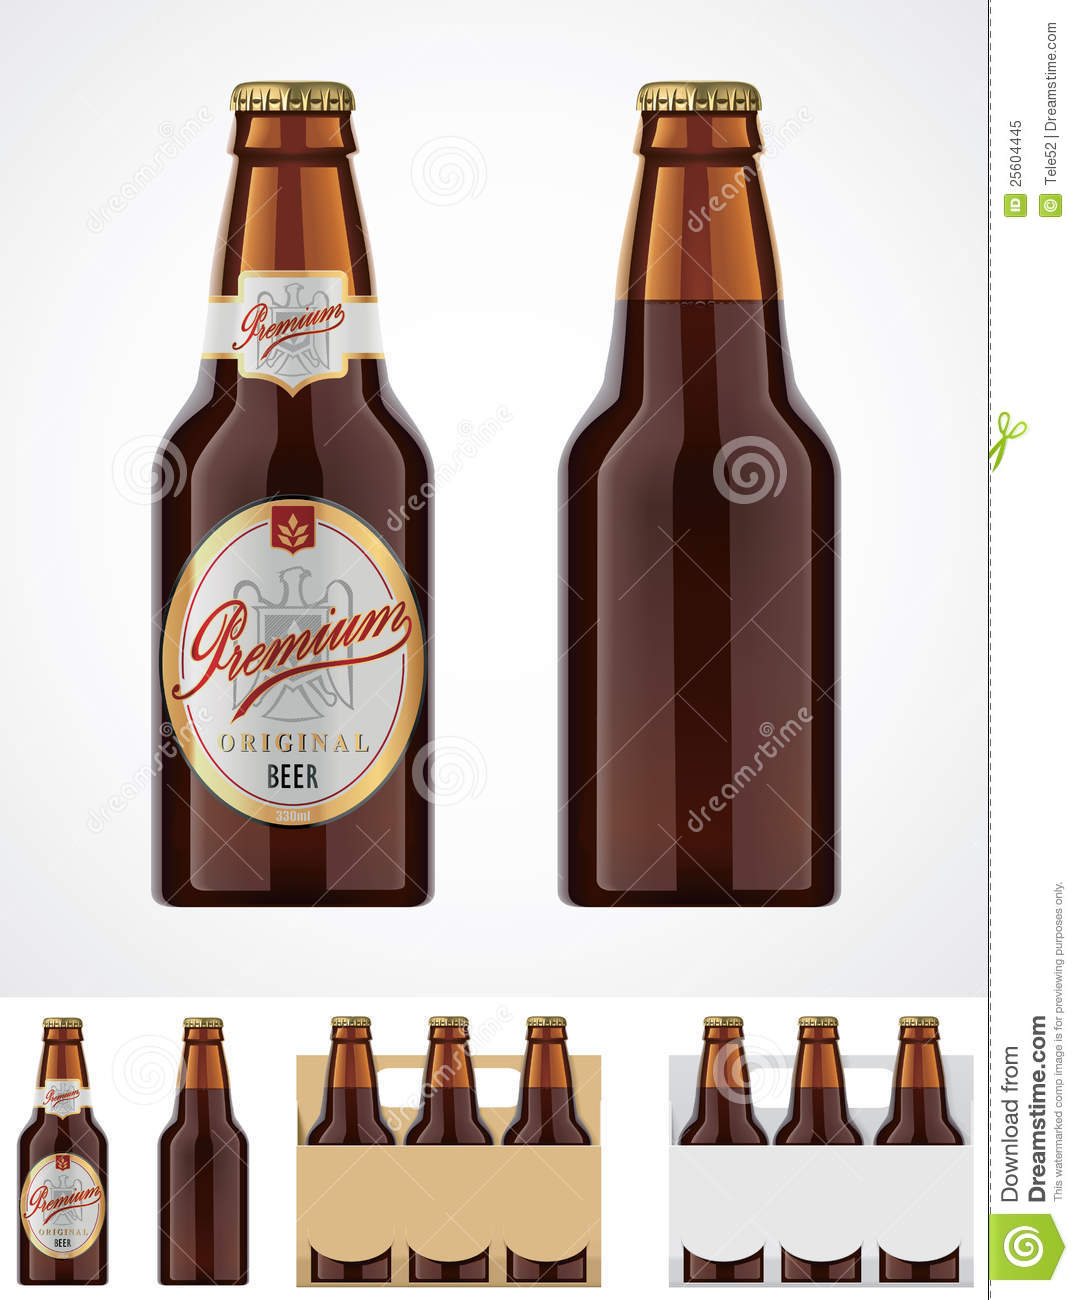 Detailed brown glass beer bottle. Can be used as template for labels.